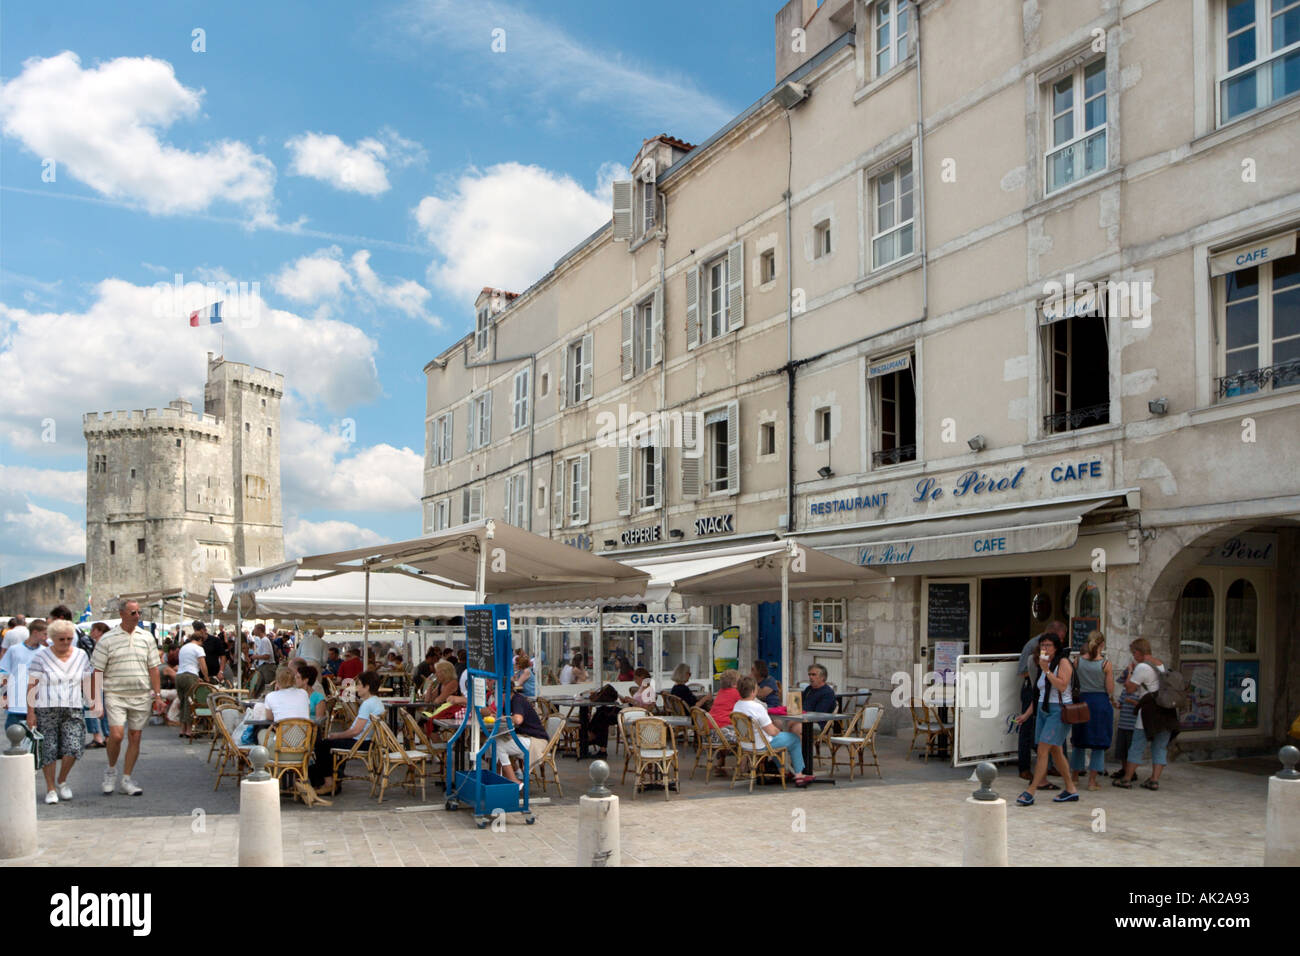 Cafe in the vieux port terra vecchia bastia corsica france stock - Pavement Cafe In The Vieux Port With The Tour St Nicolas Behind La Rochelle Poitou Charentes France